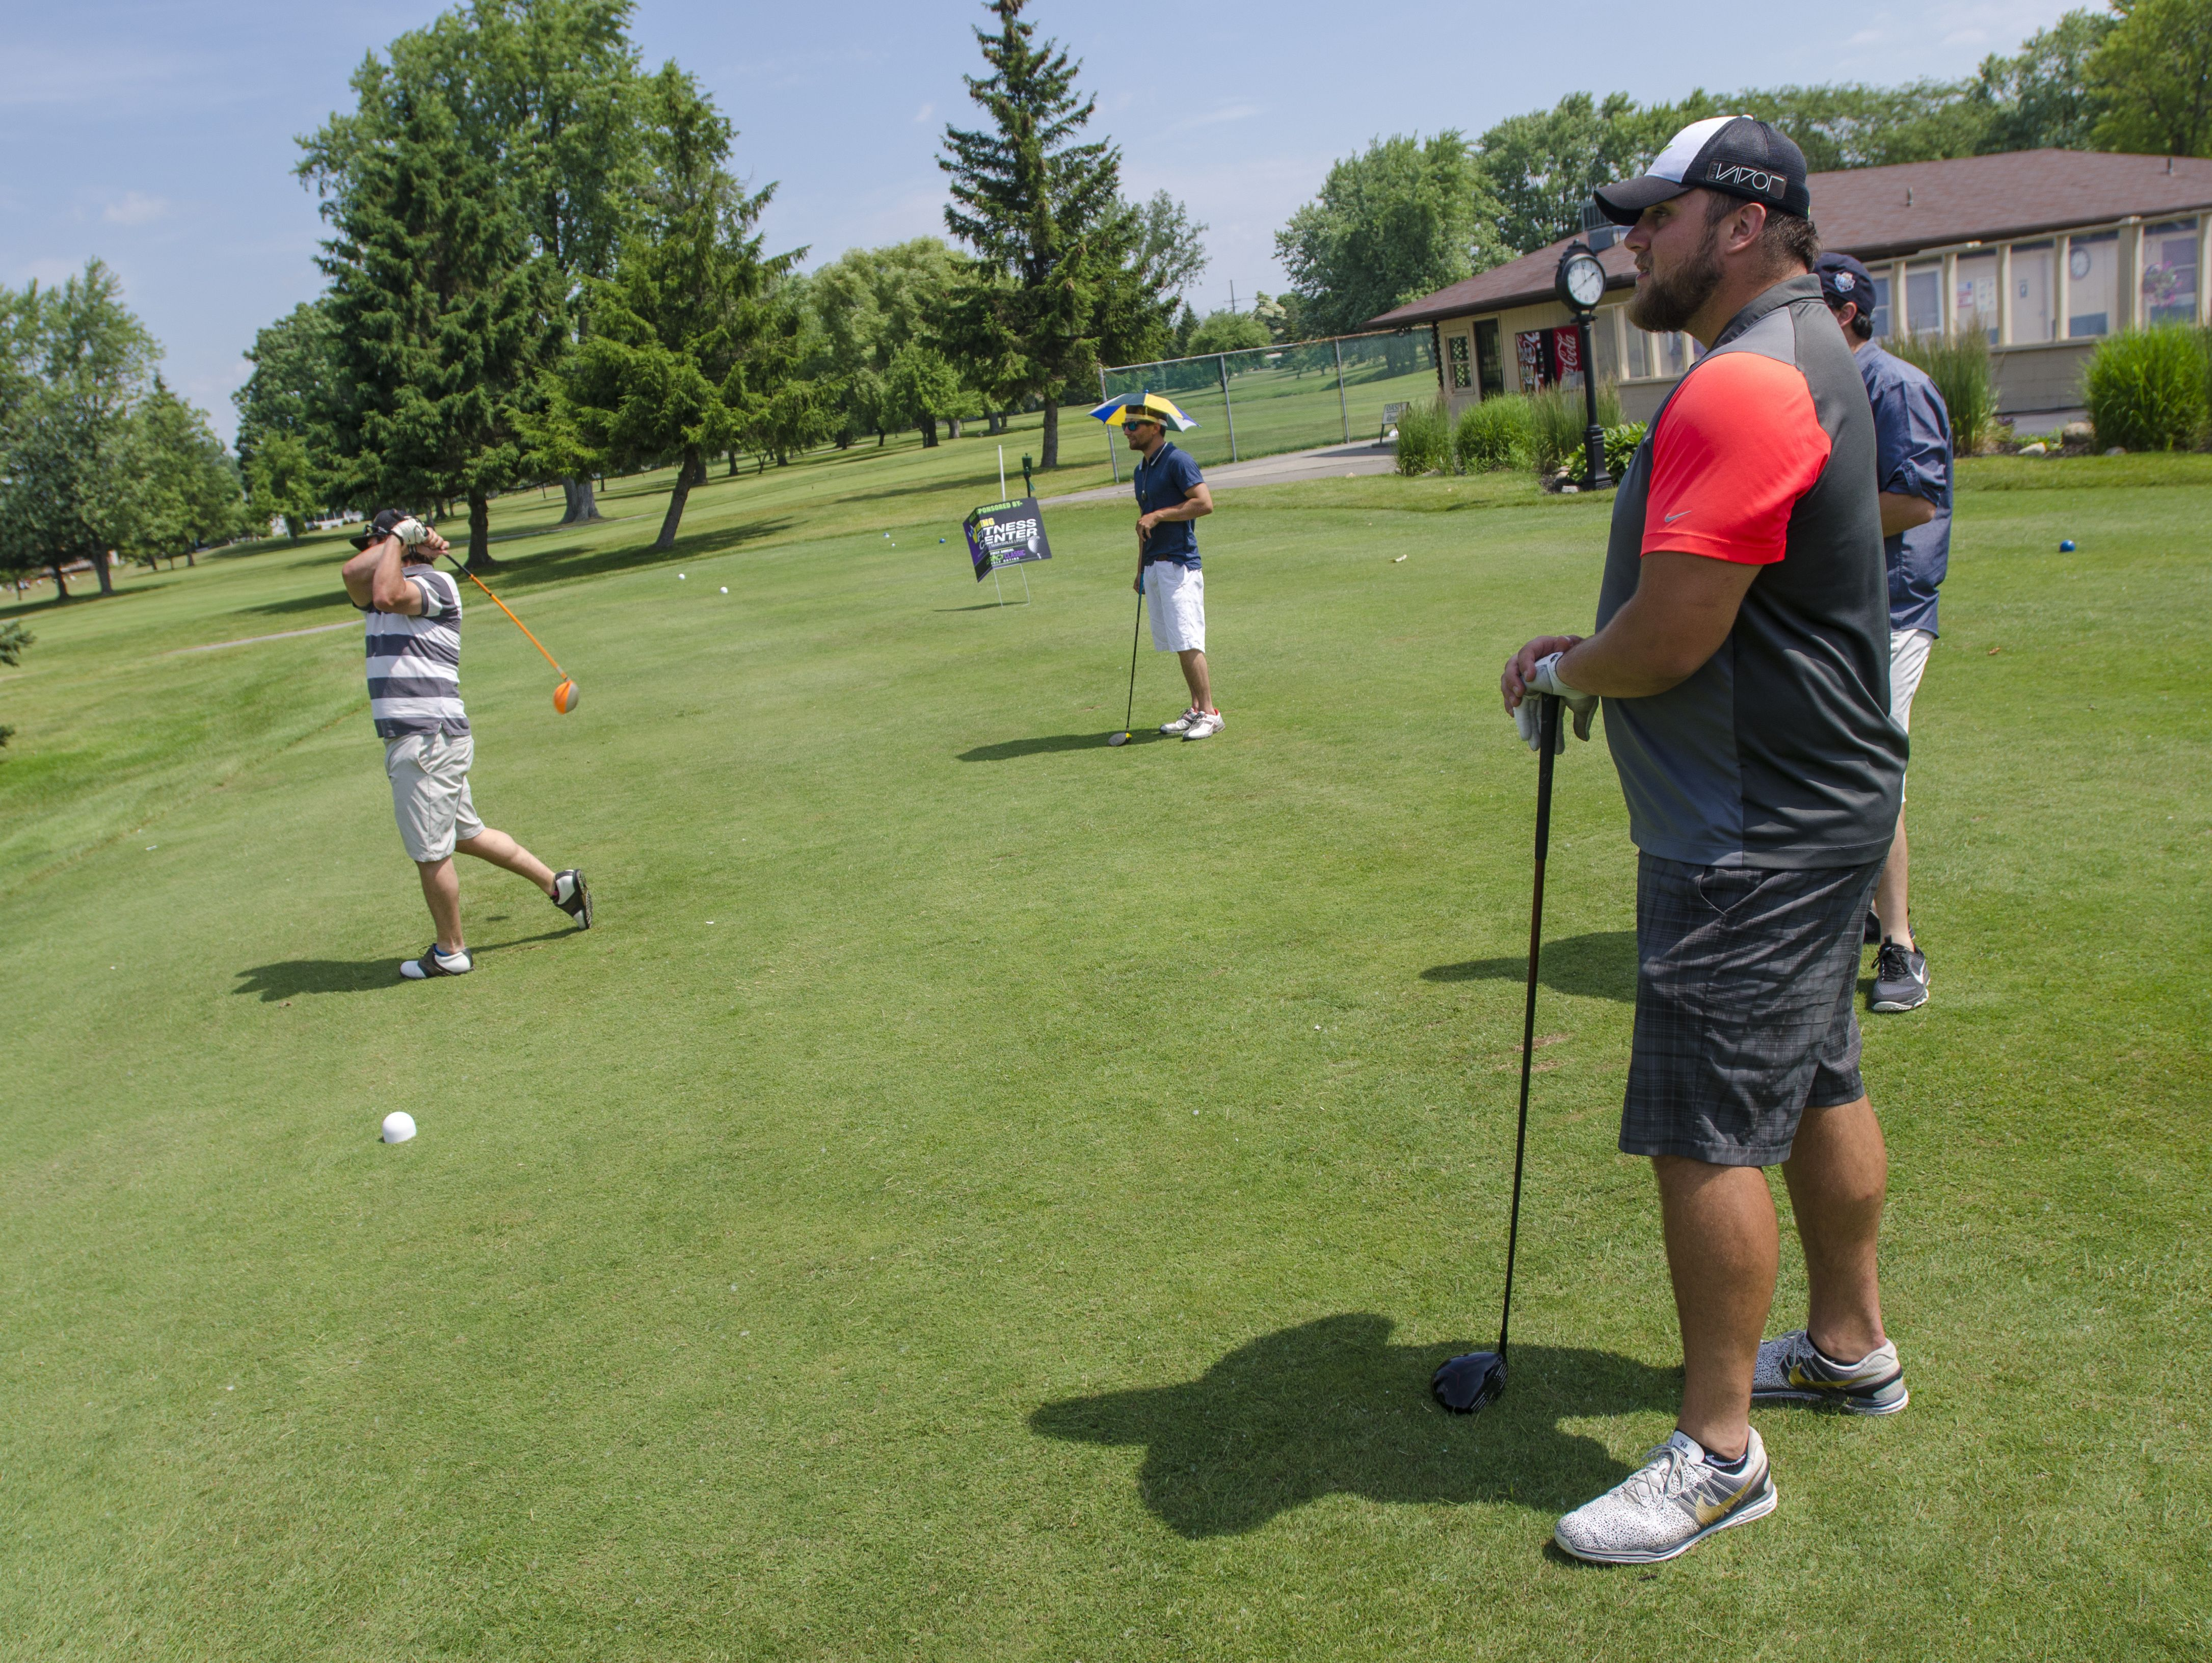 Tim Lelito and his group tee off on the 10th hole Monday, June 20, during the Lelito Legacy Golf Outing at St. Clair Golf Cub.